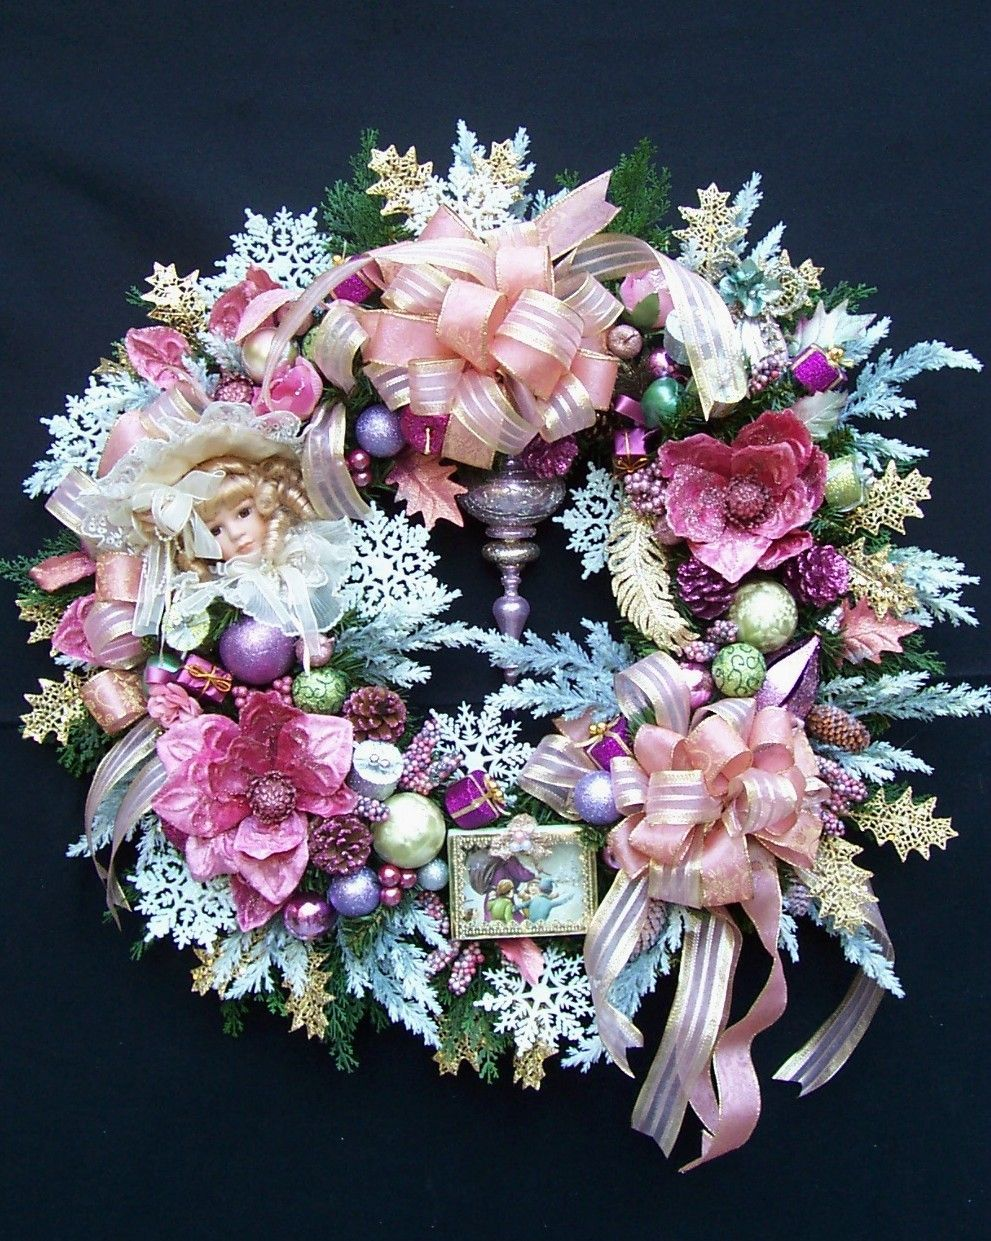 A VINTAGE VICTORIAN CHRISTMAS WREATH